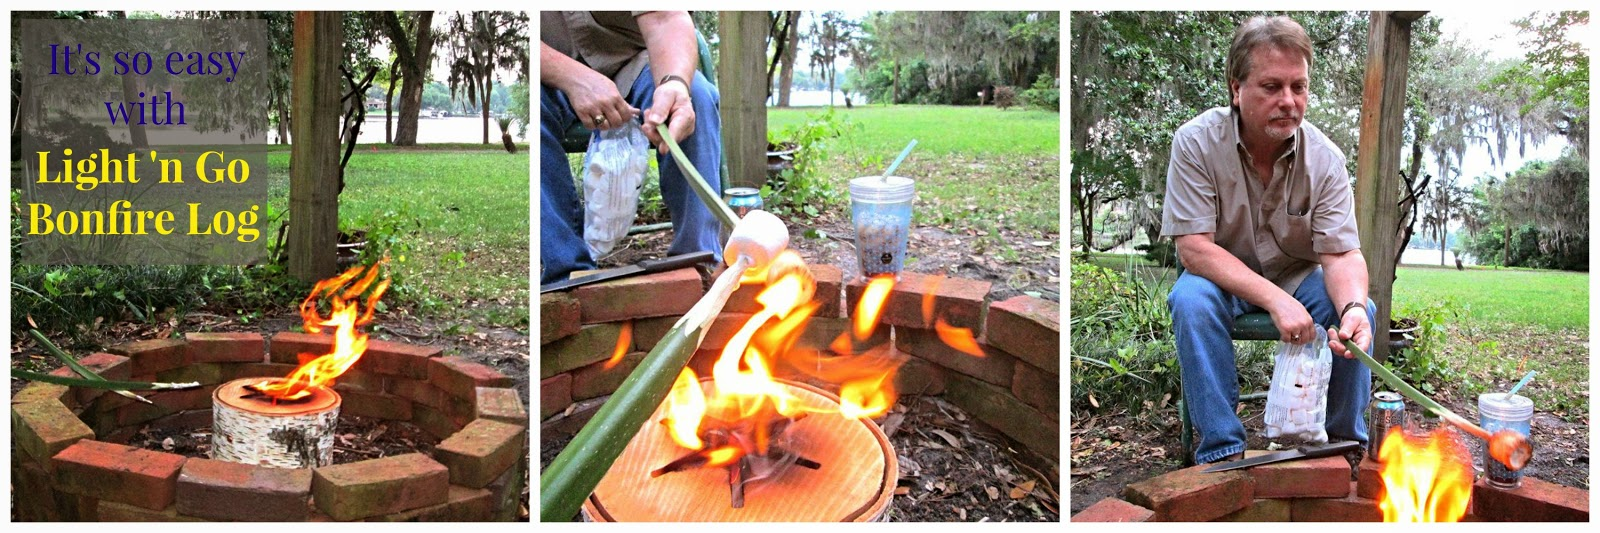 Cotton Pickin Cute Light N Go Bonfire Log Giveaway Marshmallows